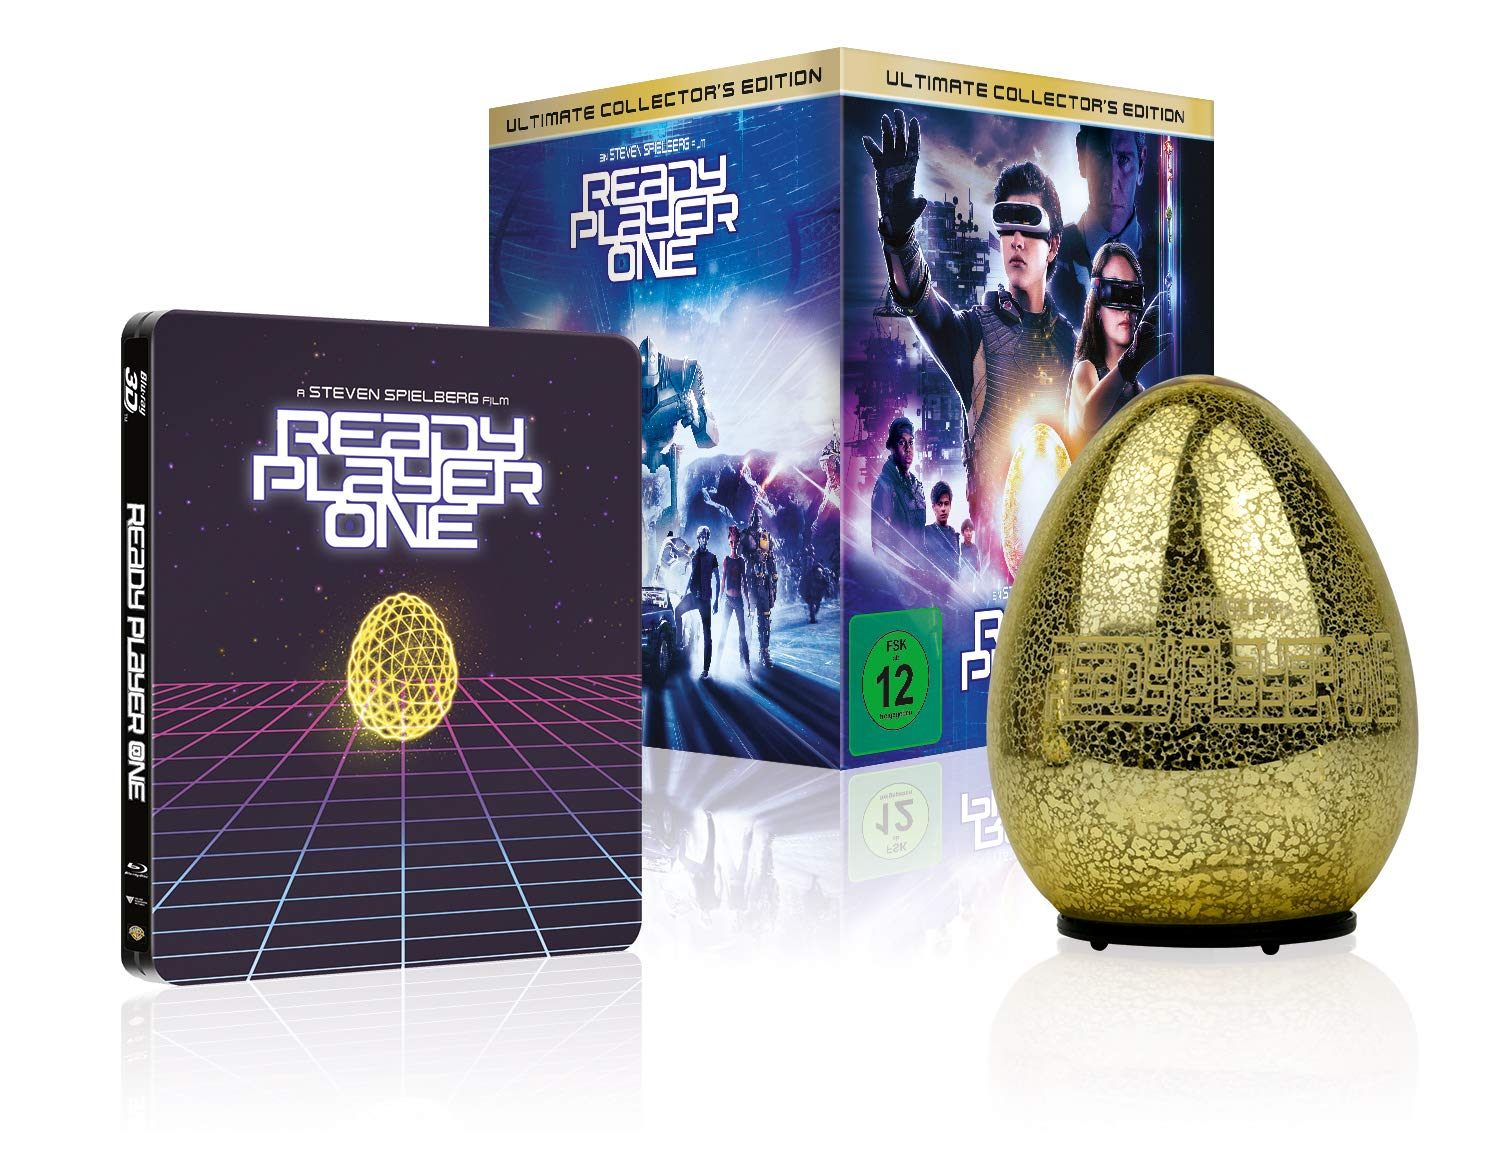 ready player one collectors edition